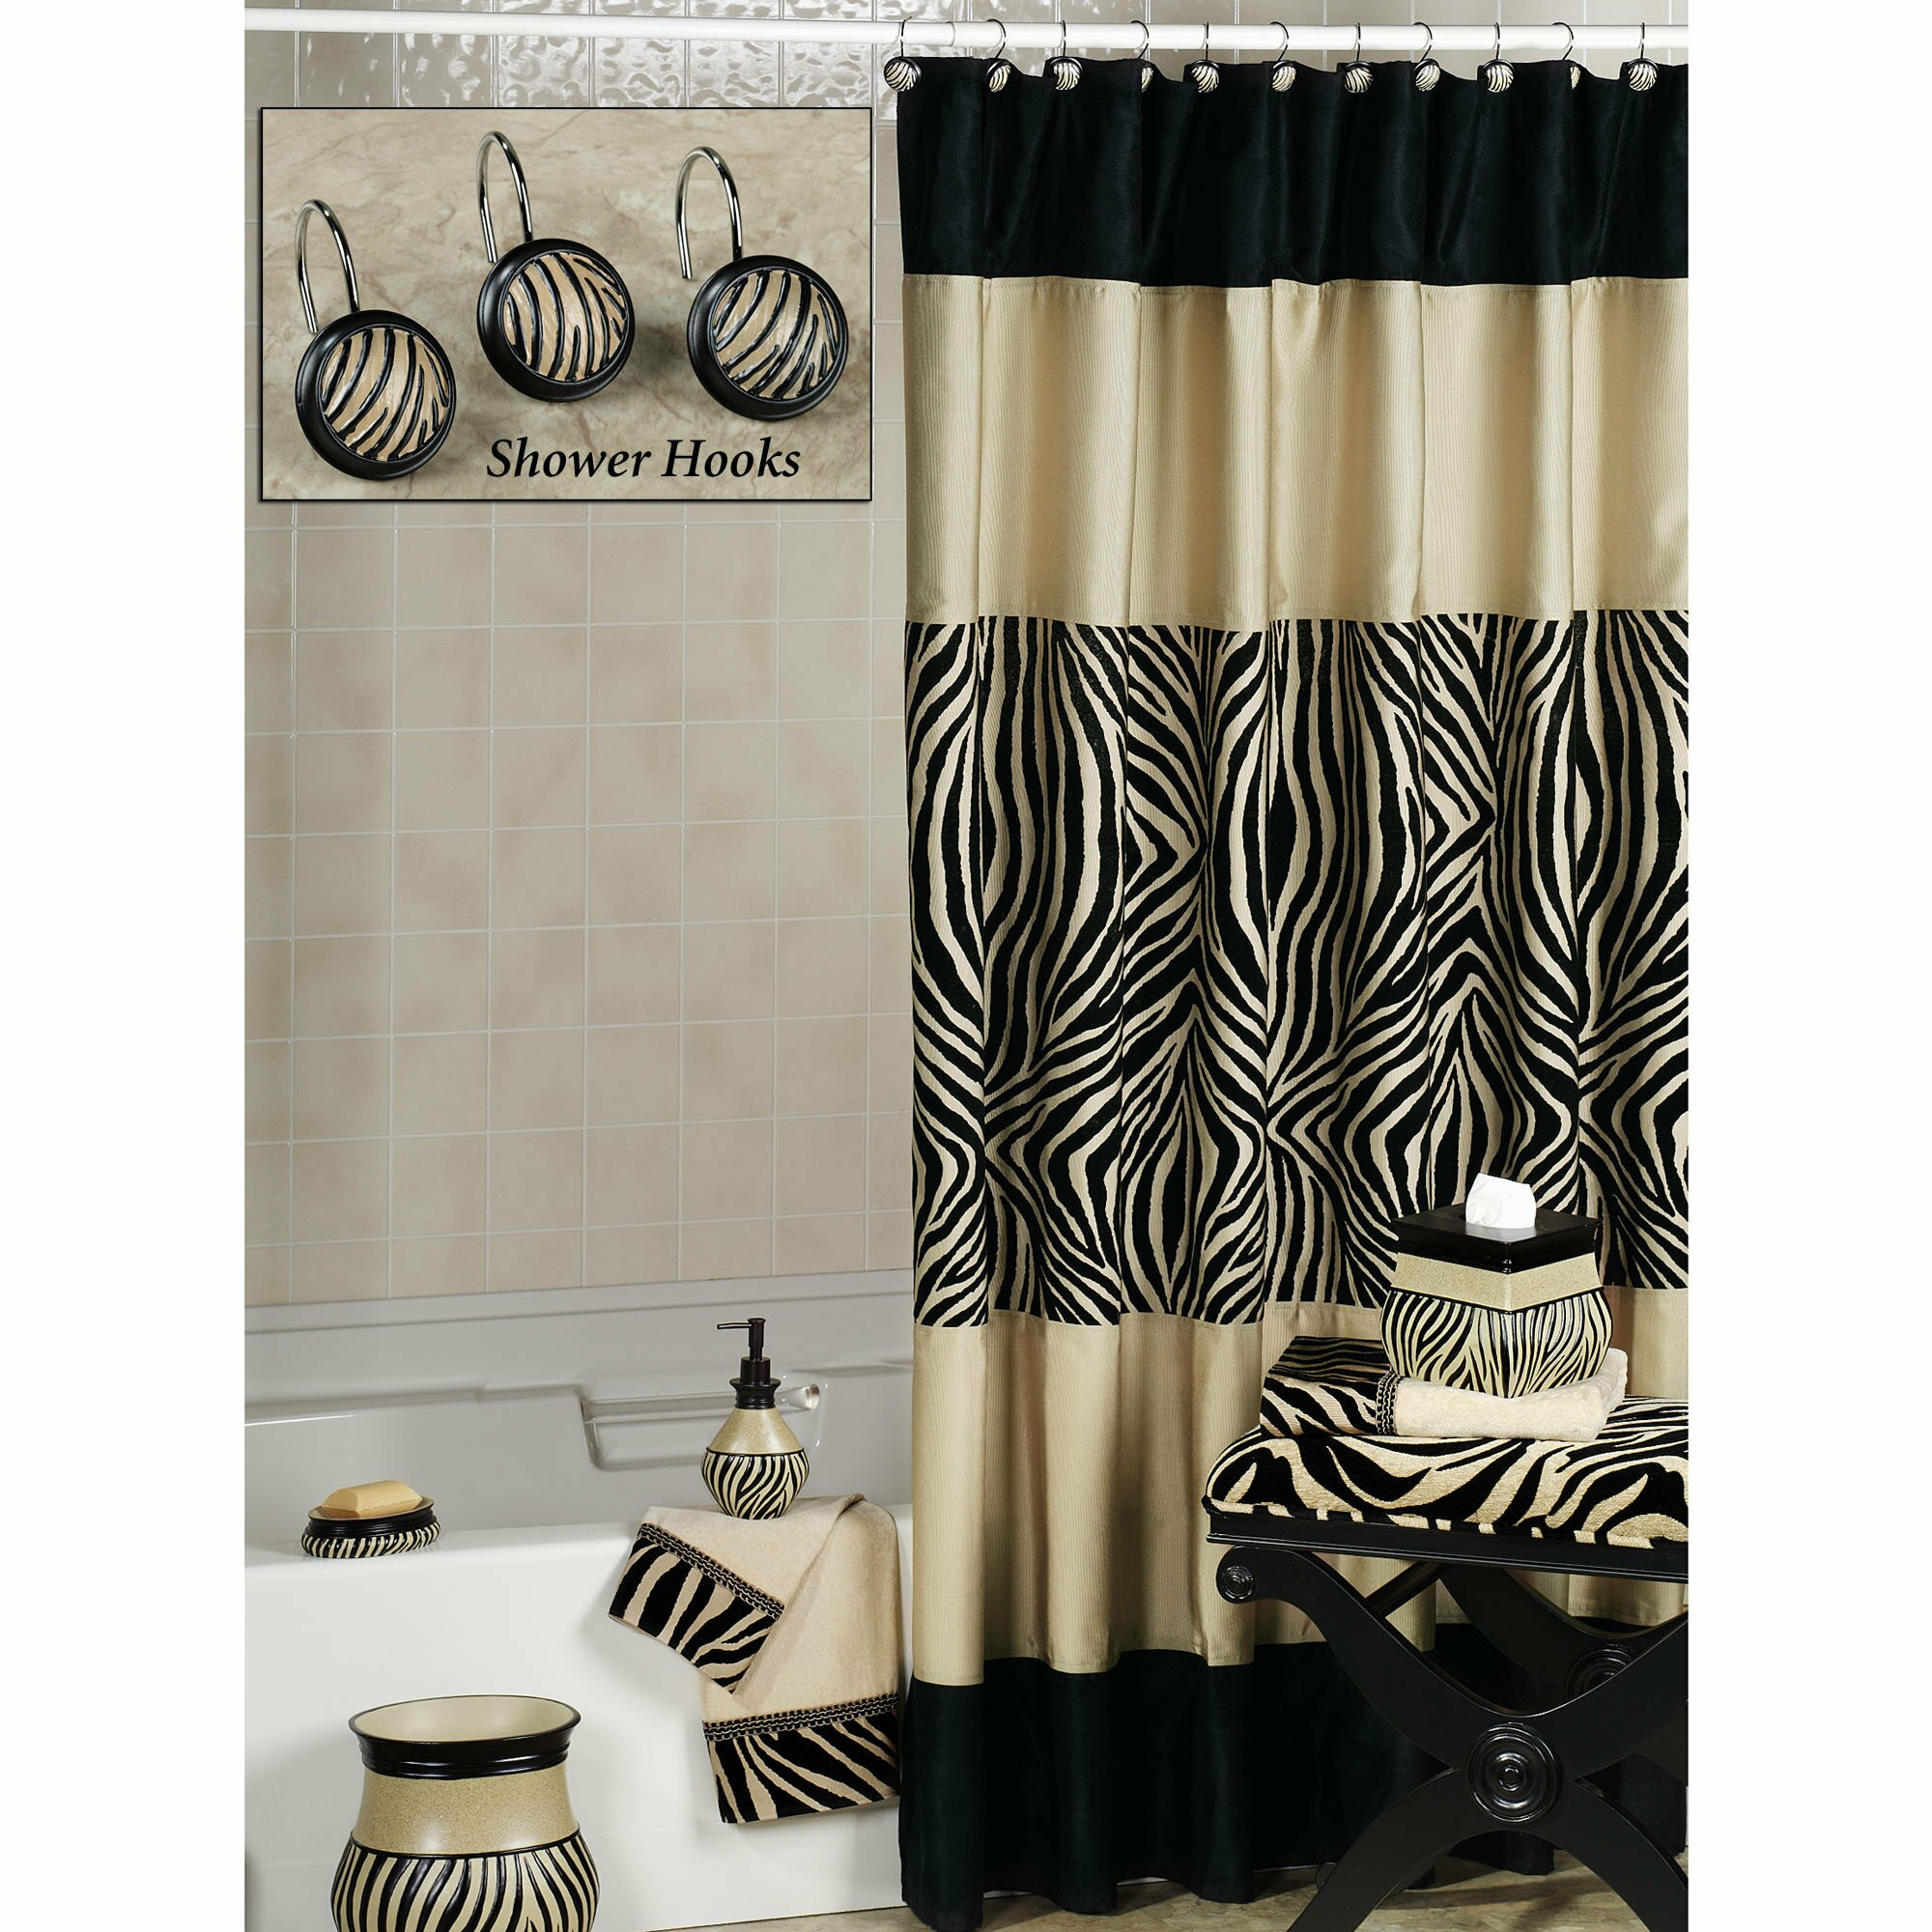 Walmart Shower Curtains Sets | Shower Liner Walmart | Walmart Shower Curtain